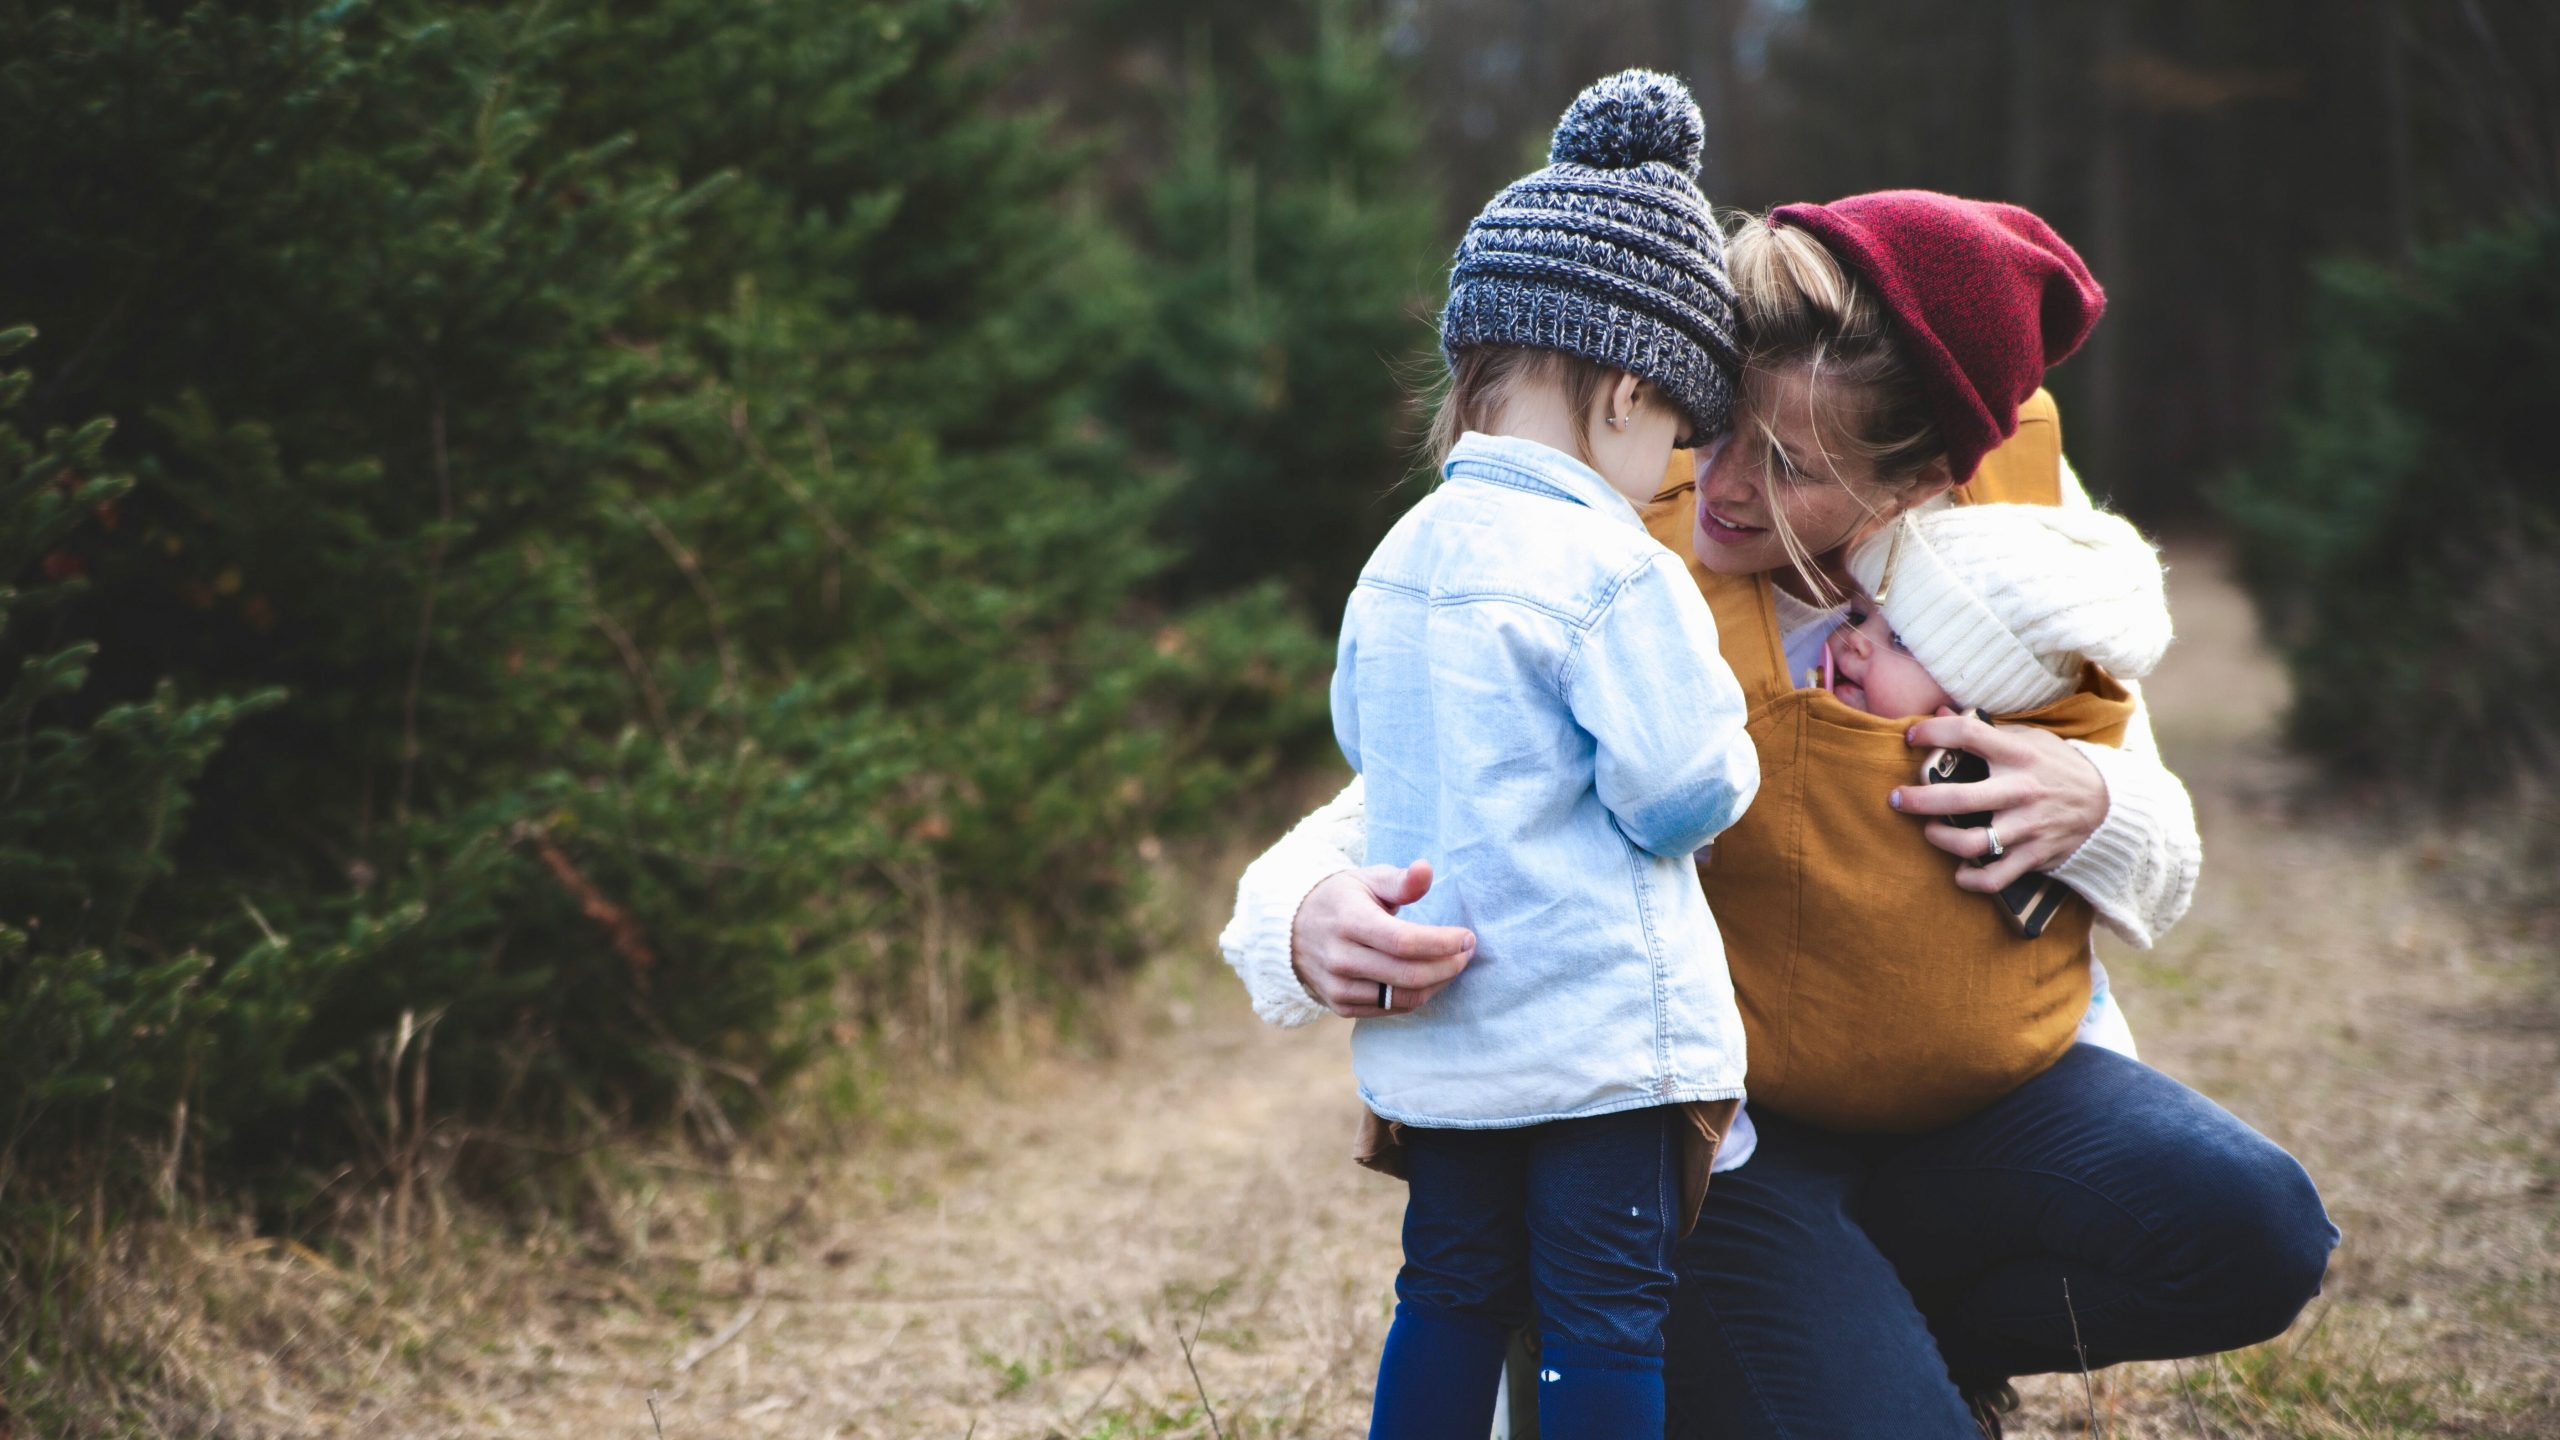 Why I Might Compare My Parenting To Yours